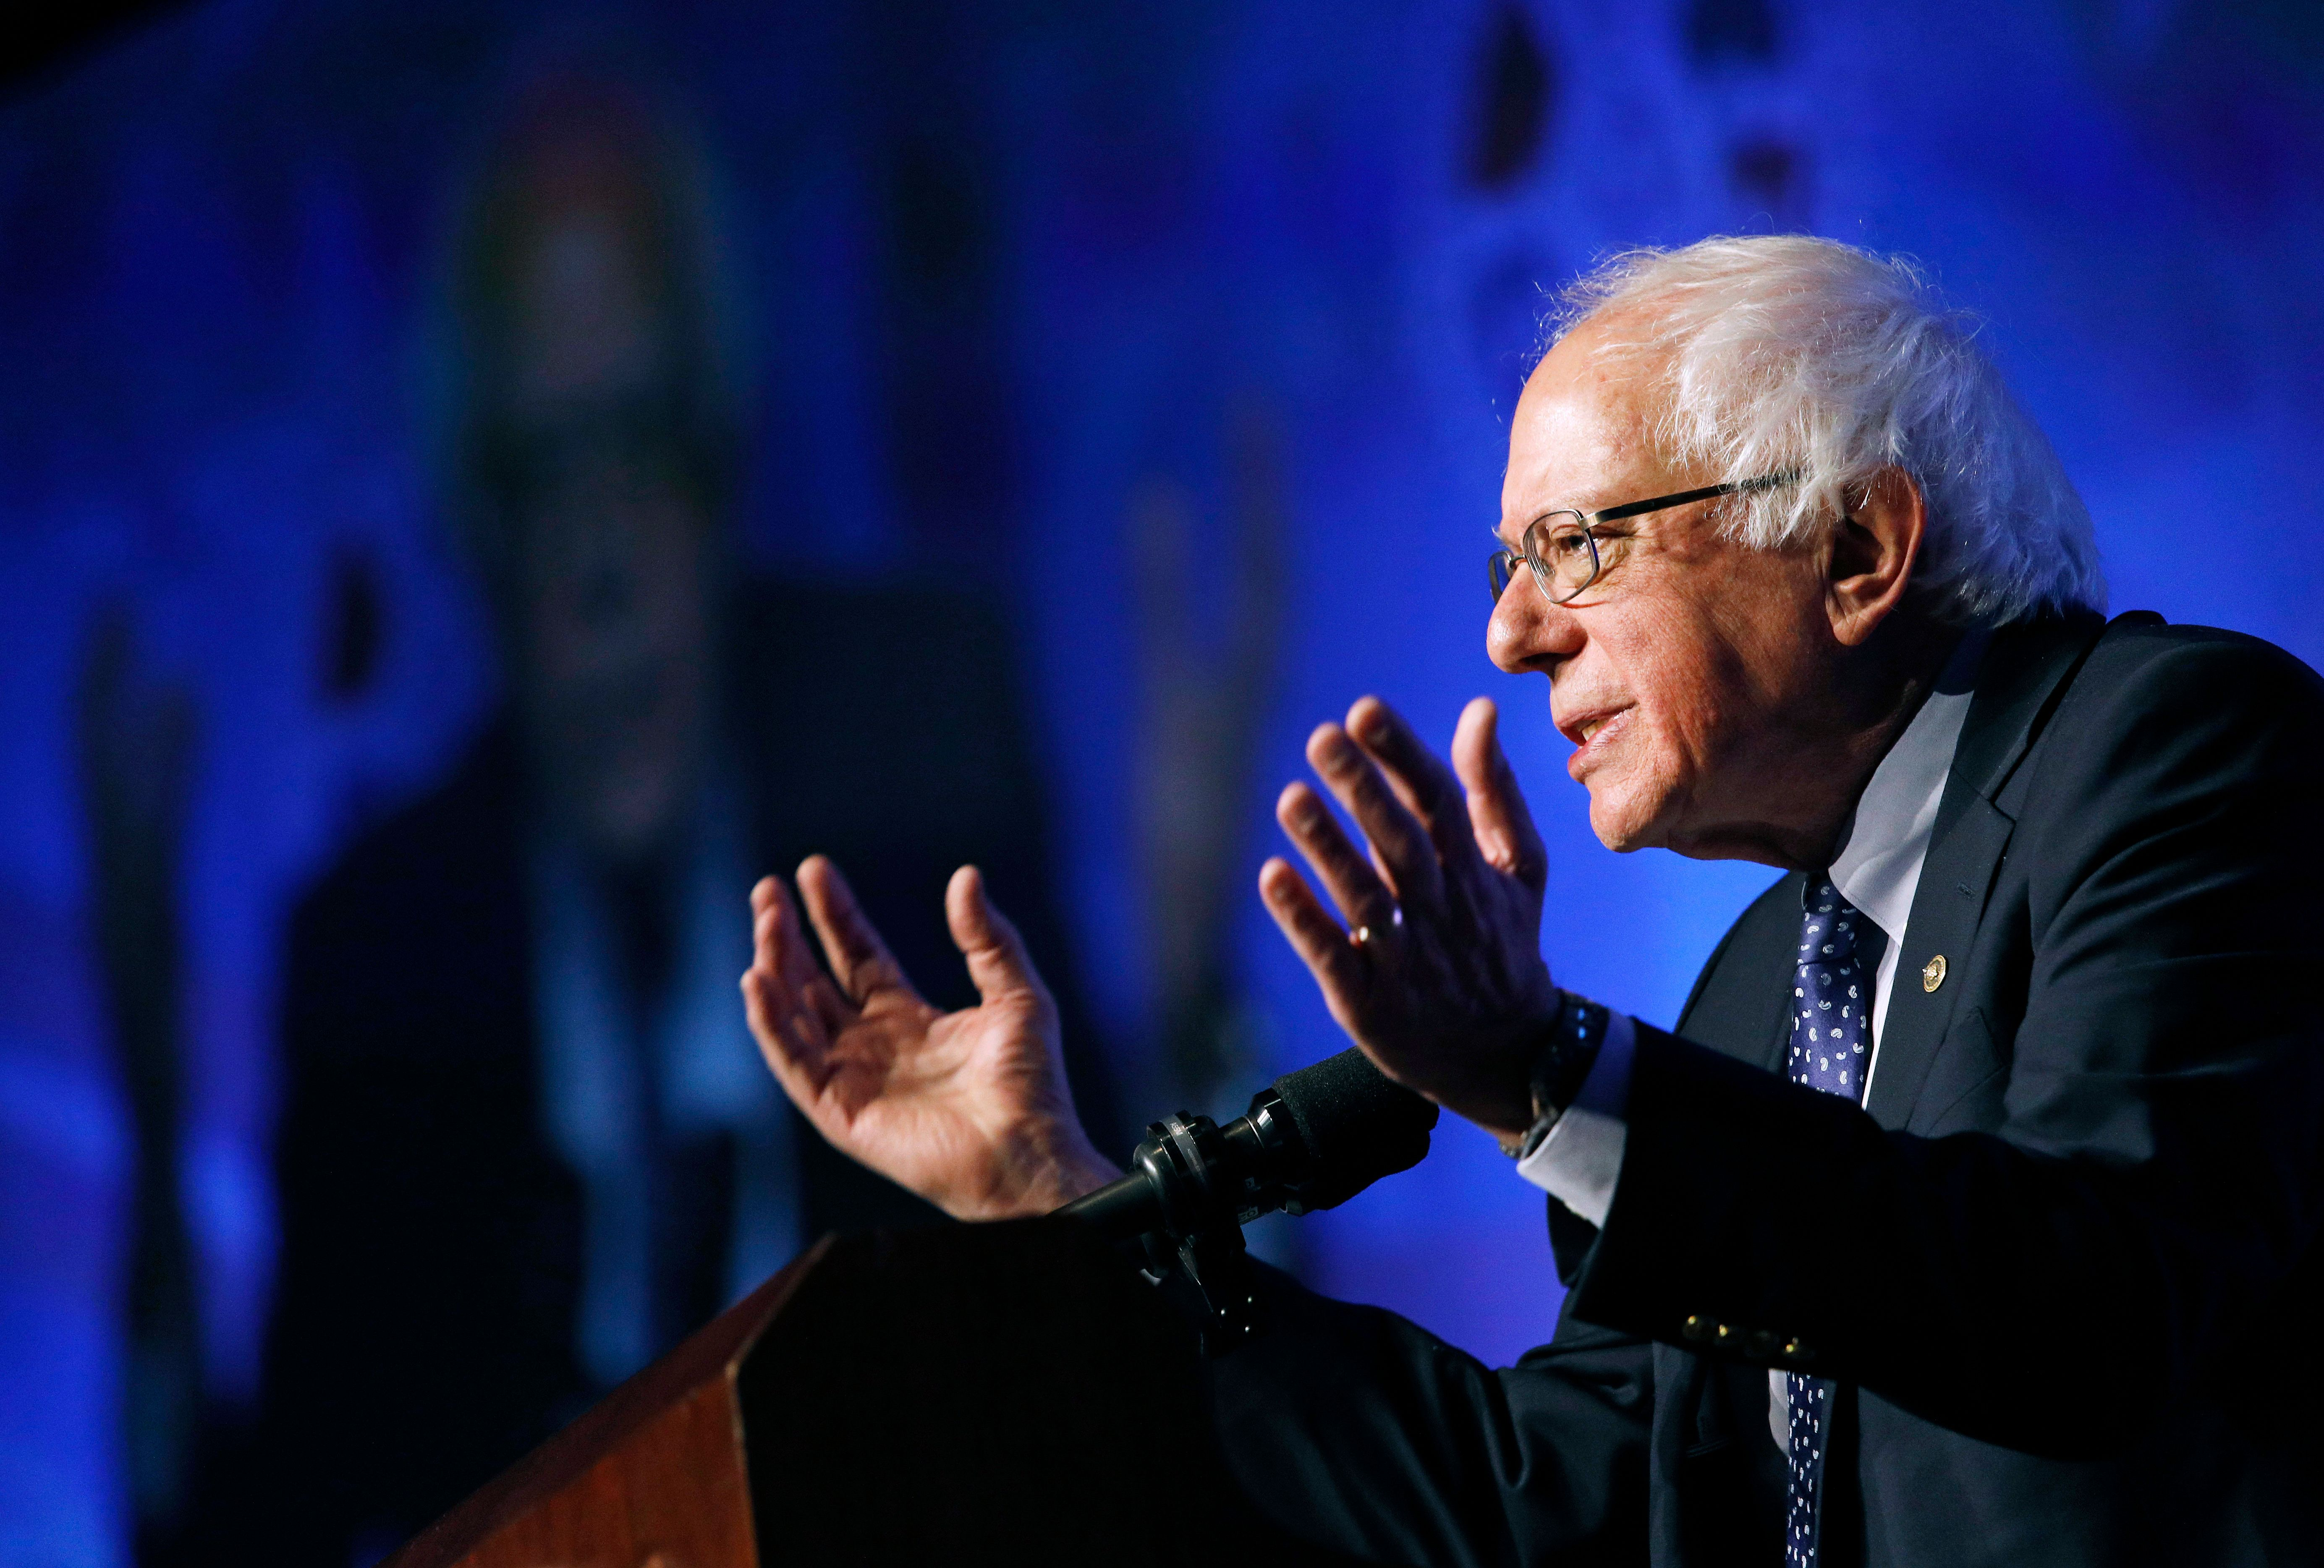 Liberal Think Tank Assailed By Sanders Admits Video On Him Was 'Overly Harsh'